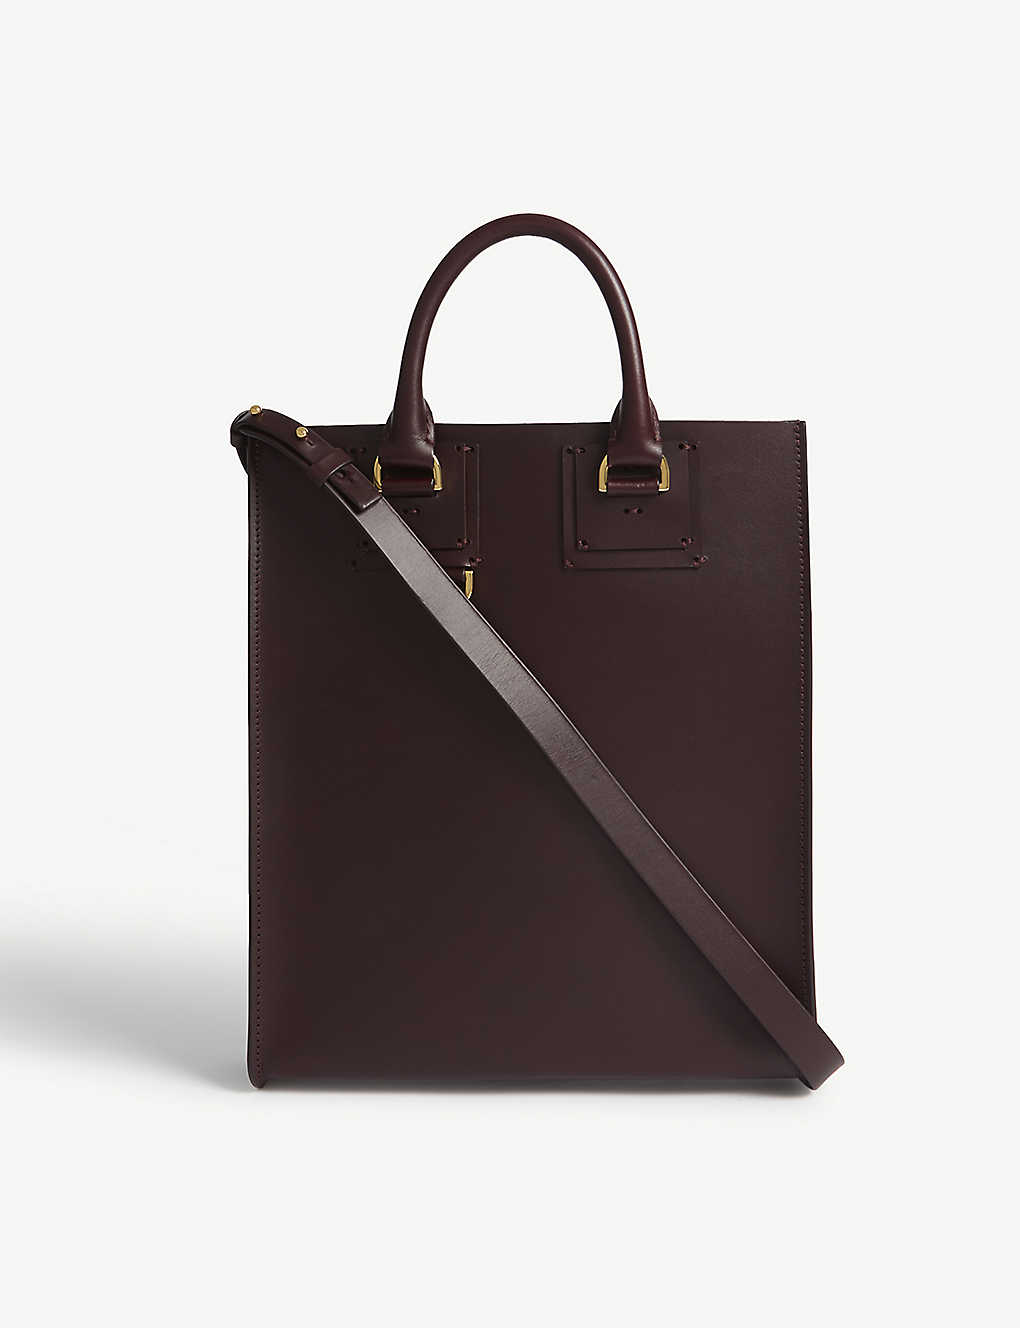 737978c03 SOPHIE HULME - Mini Albion leather tote bag | Selfridges.com